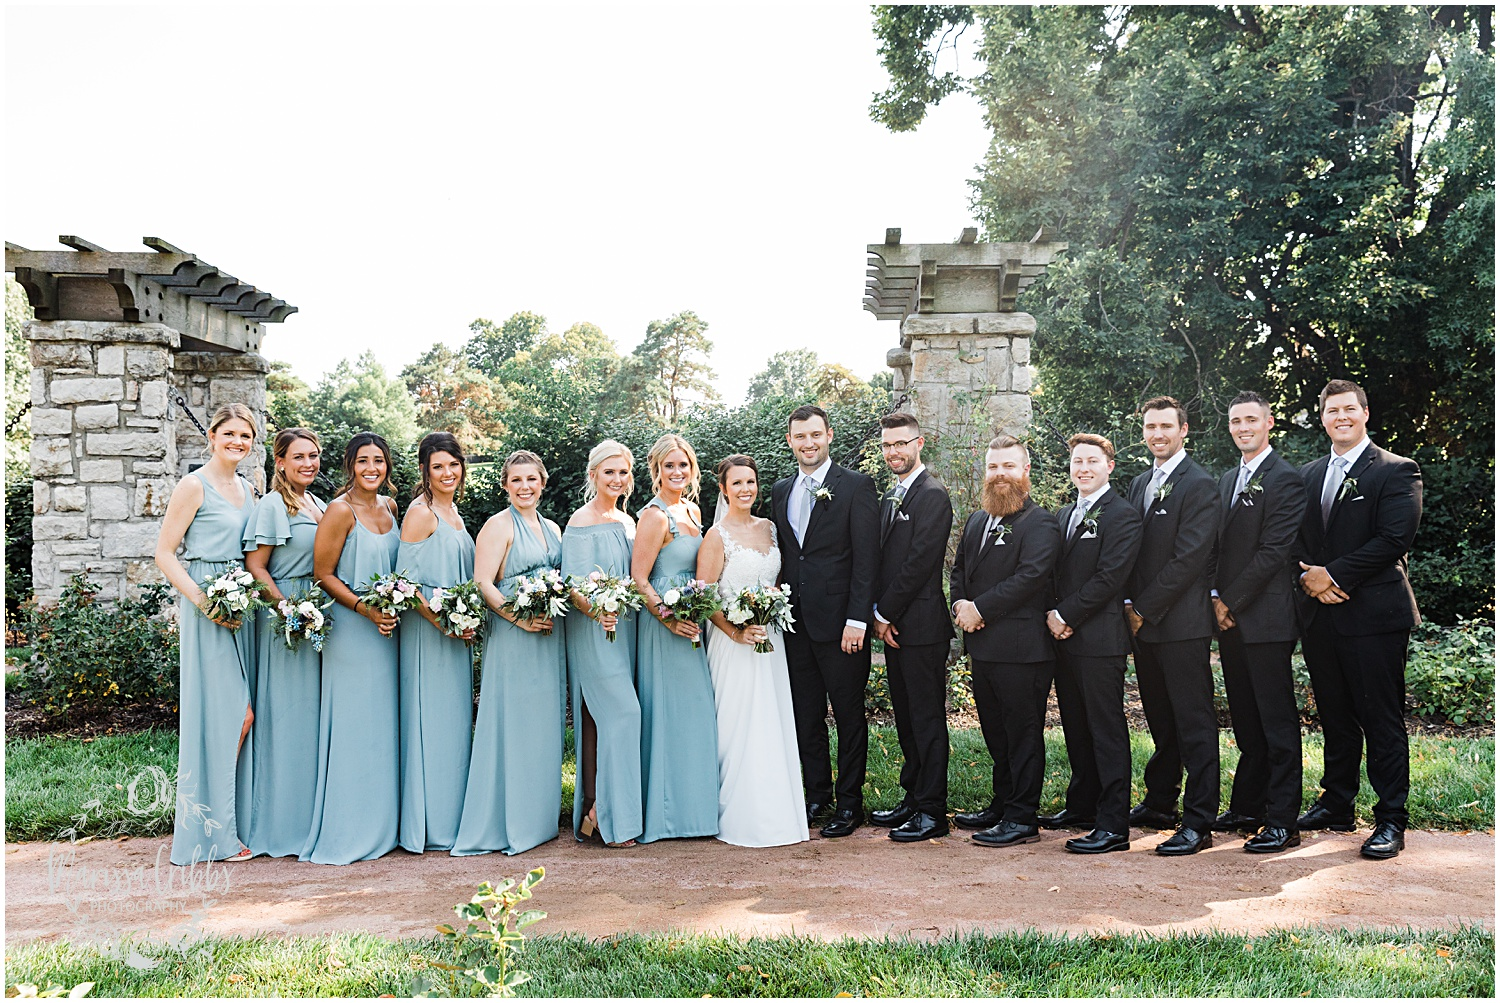 KELLY & MITCH MARRIED BLOG | MARISSA CRIBBS PHOTOGRAPHY | THE EVERLY EVENT SPACE_8858.jpg